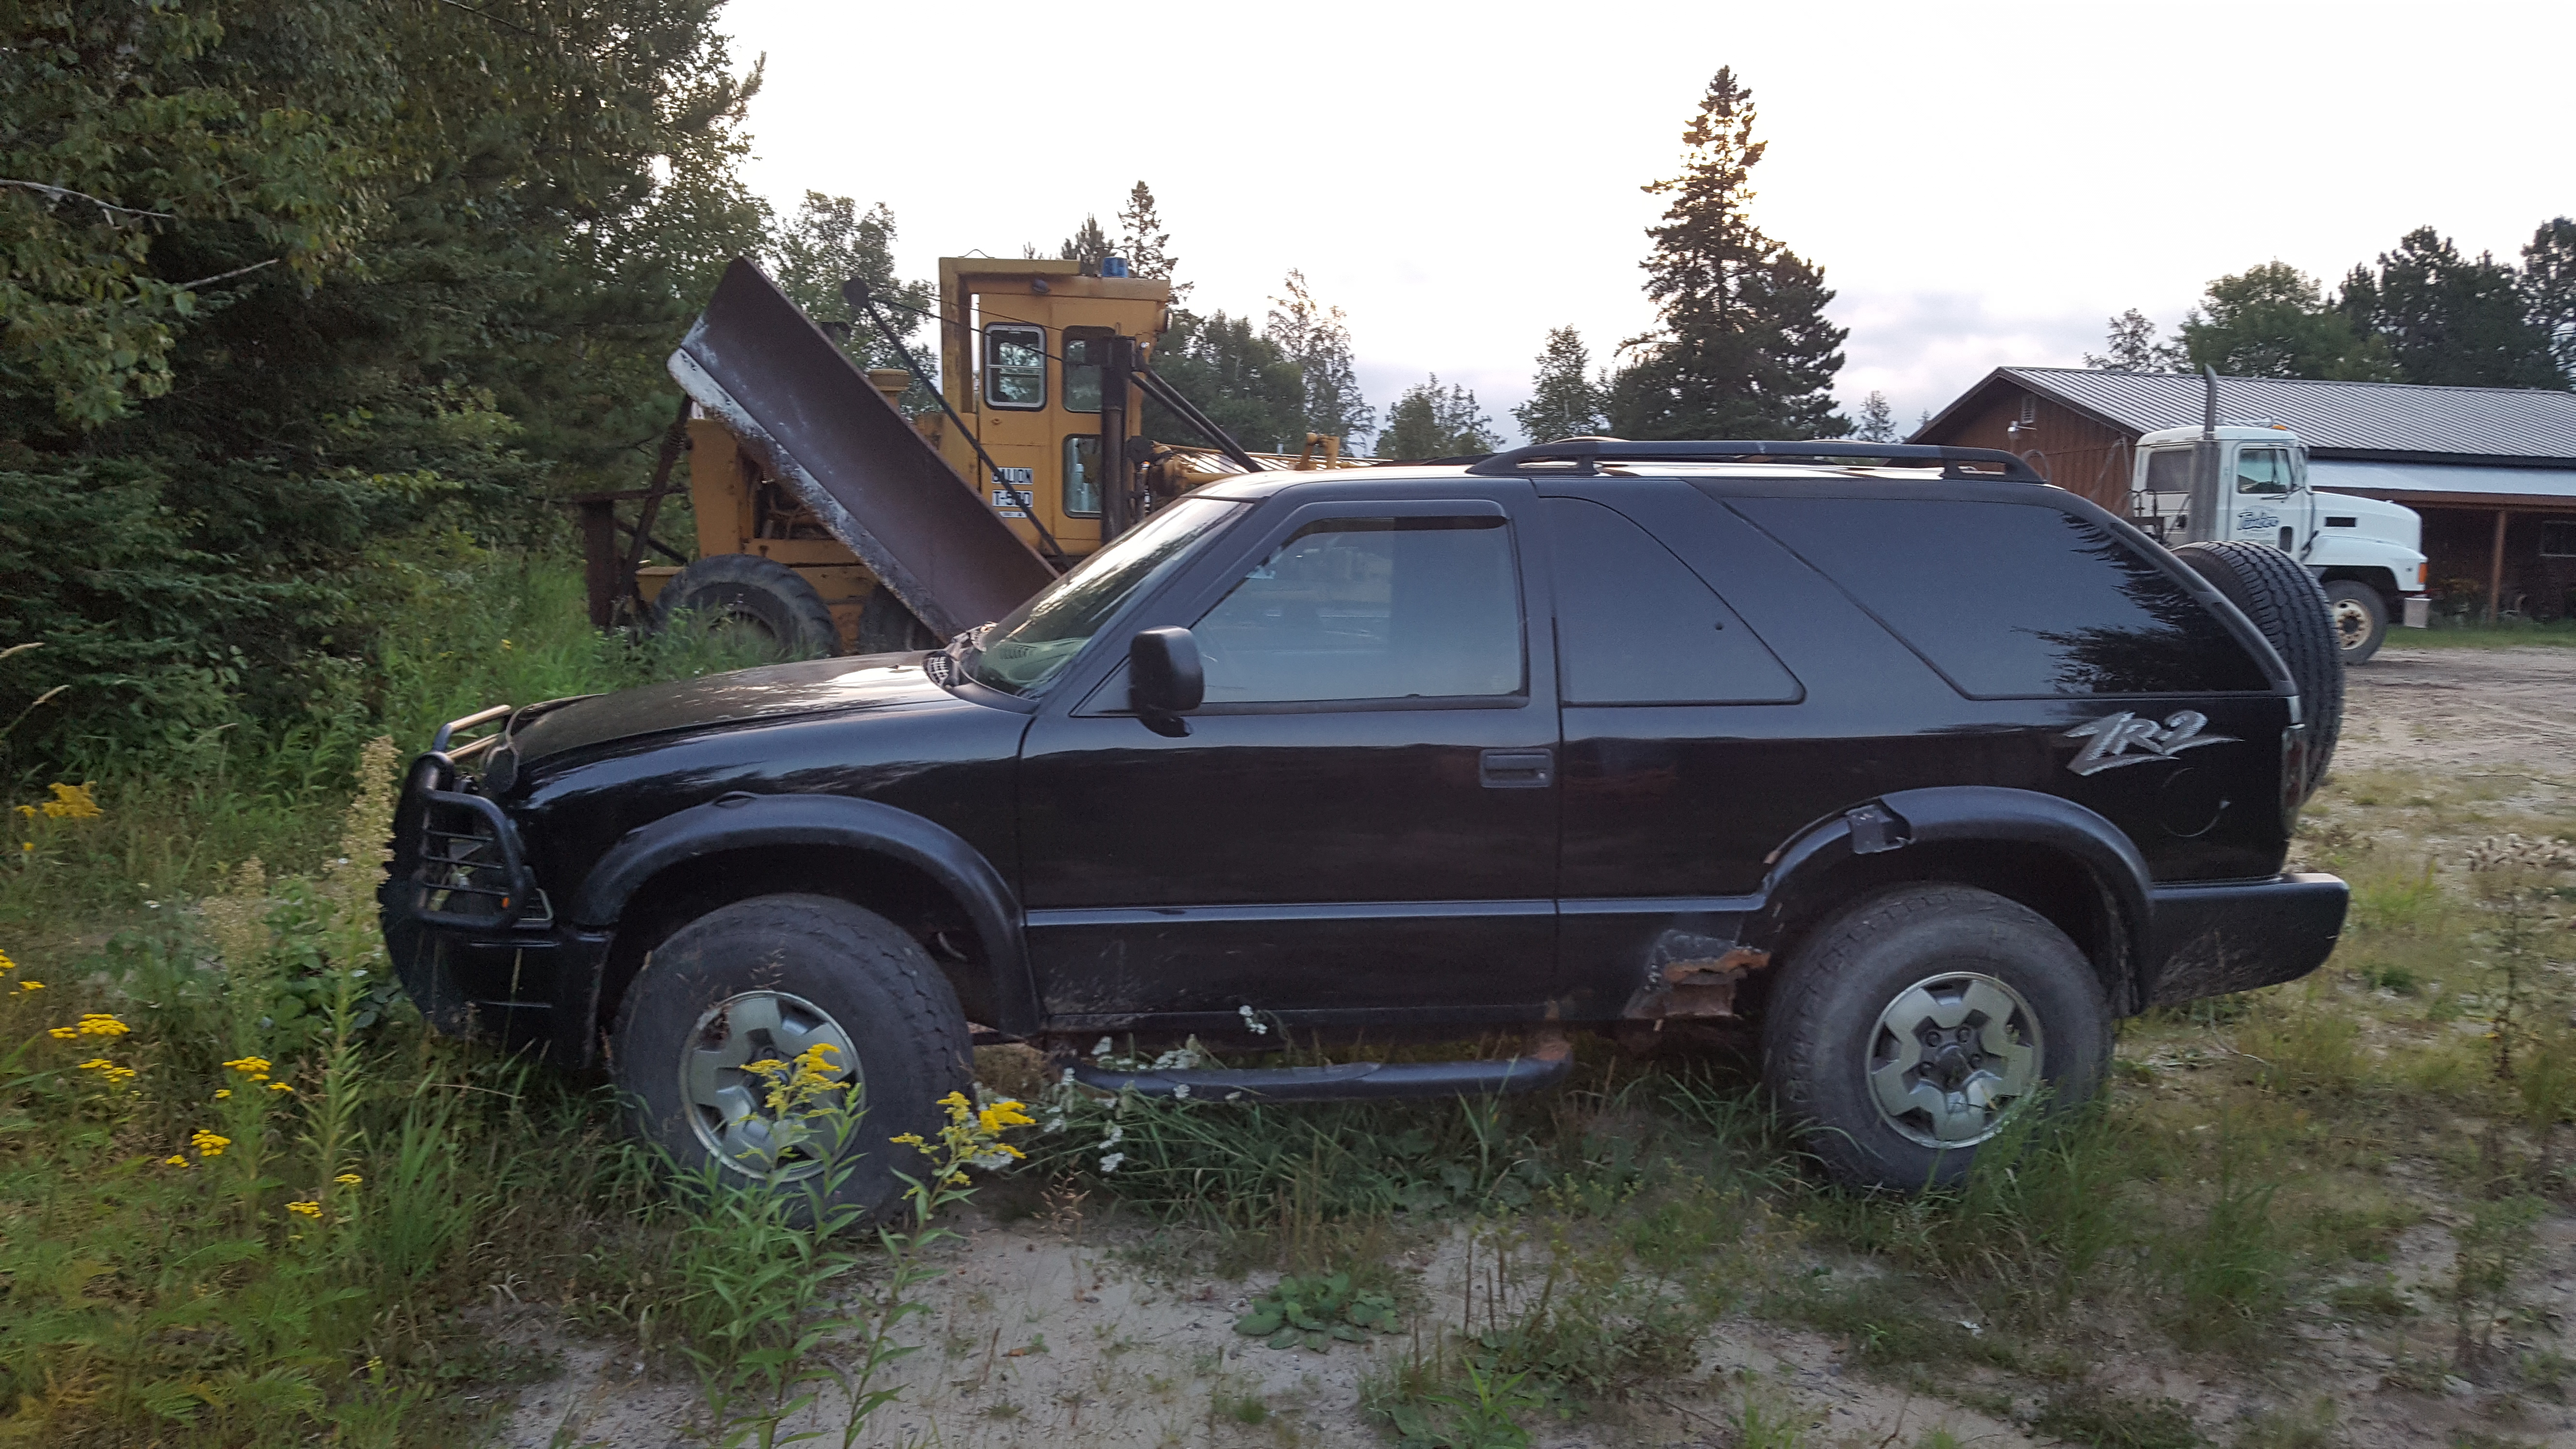 Cash for Cars Marysville, WA | Sell Your Junk Car | The Clunker Junker